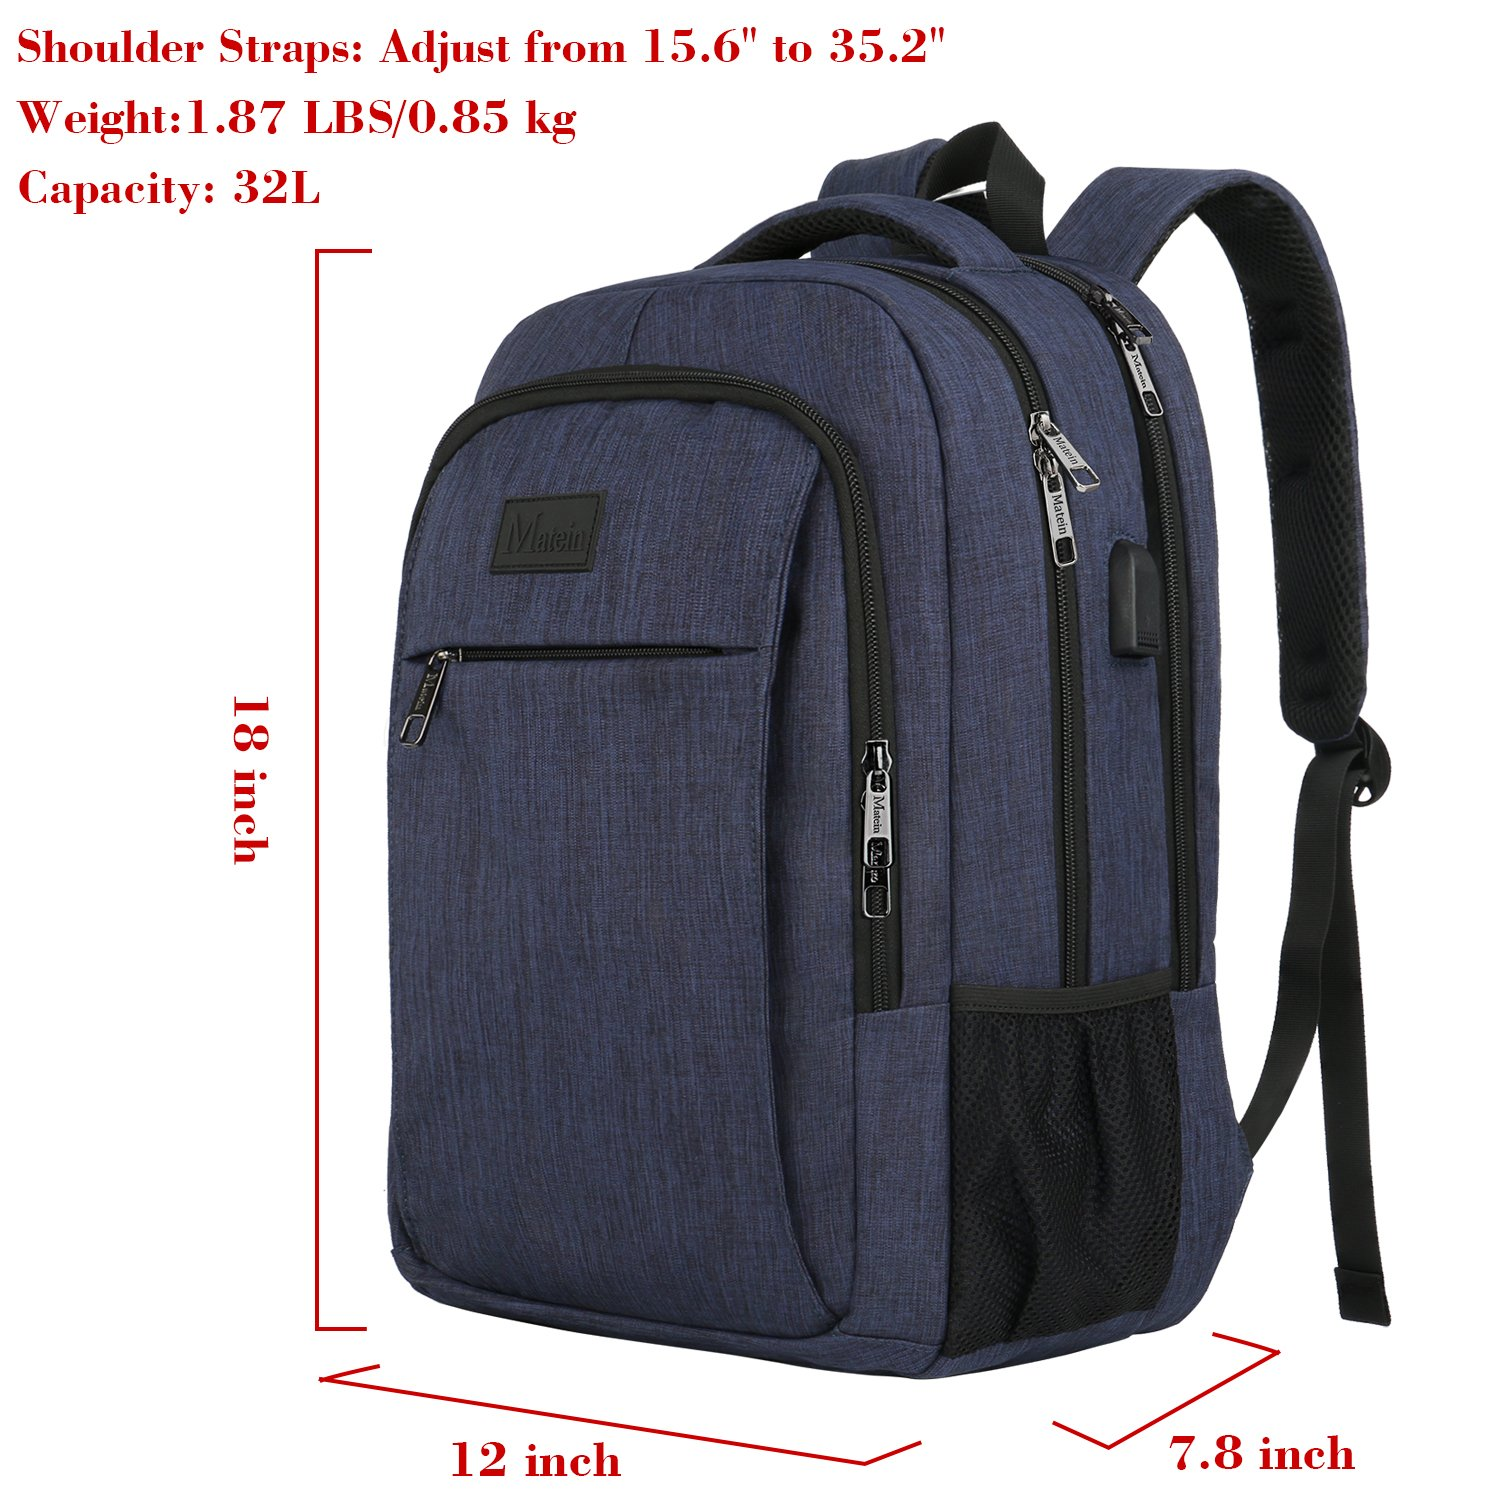 Travel Laptop Backpack,Business Anti Theft Slim Durable Laptops Backpack  with USB Charging Port,Water Resistant College School Computer Bag for Women    Men ... 53dfdd379e